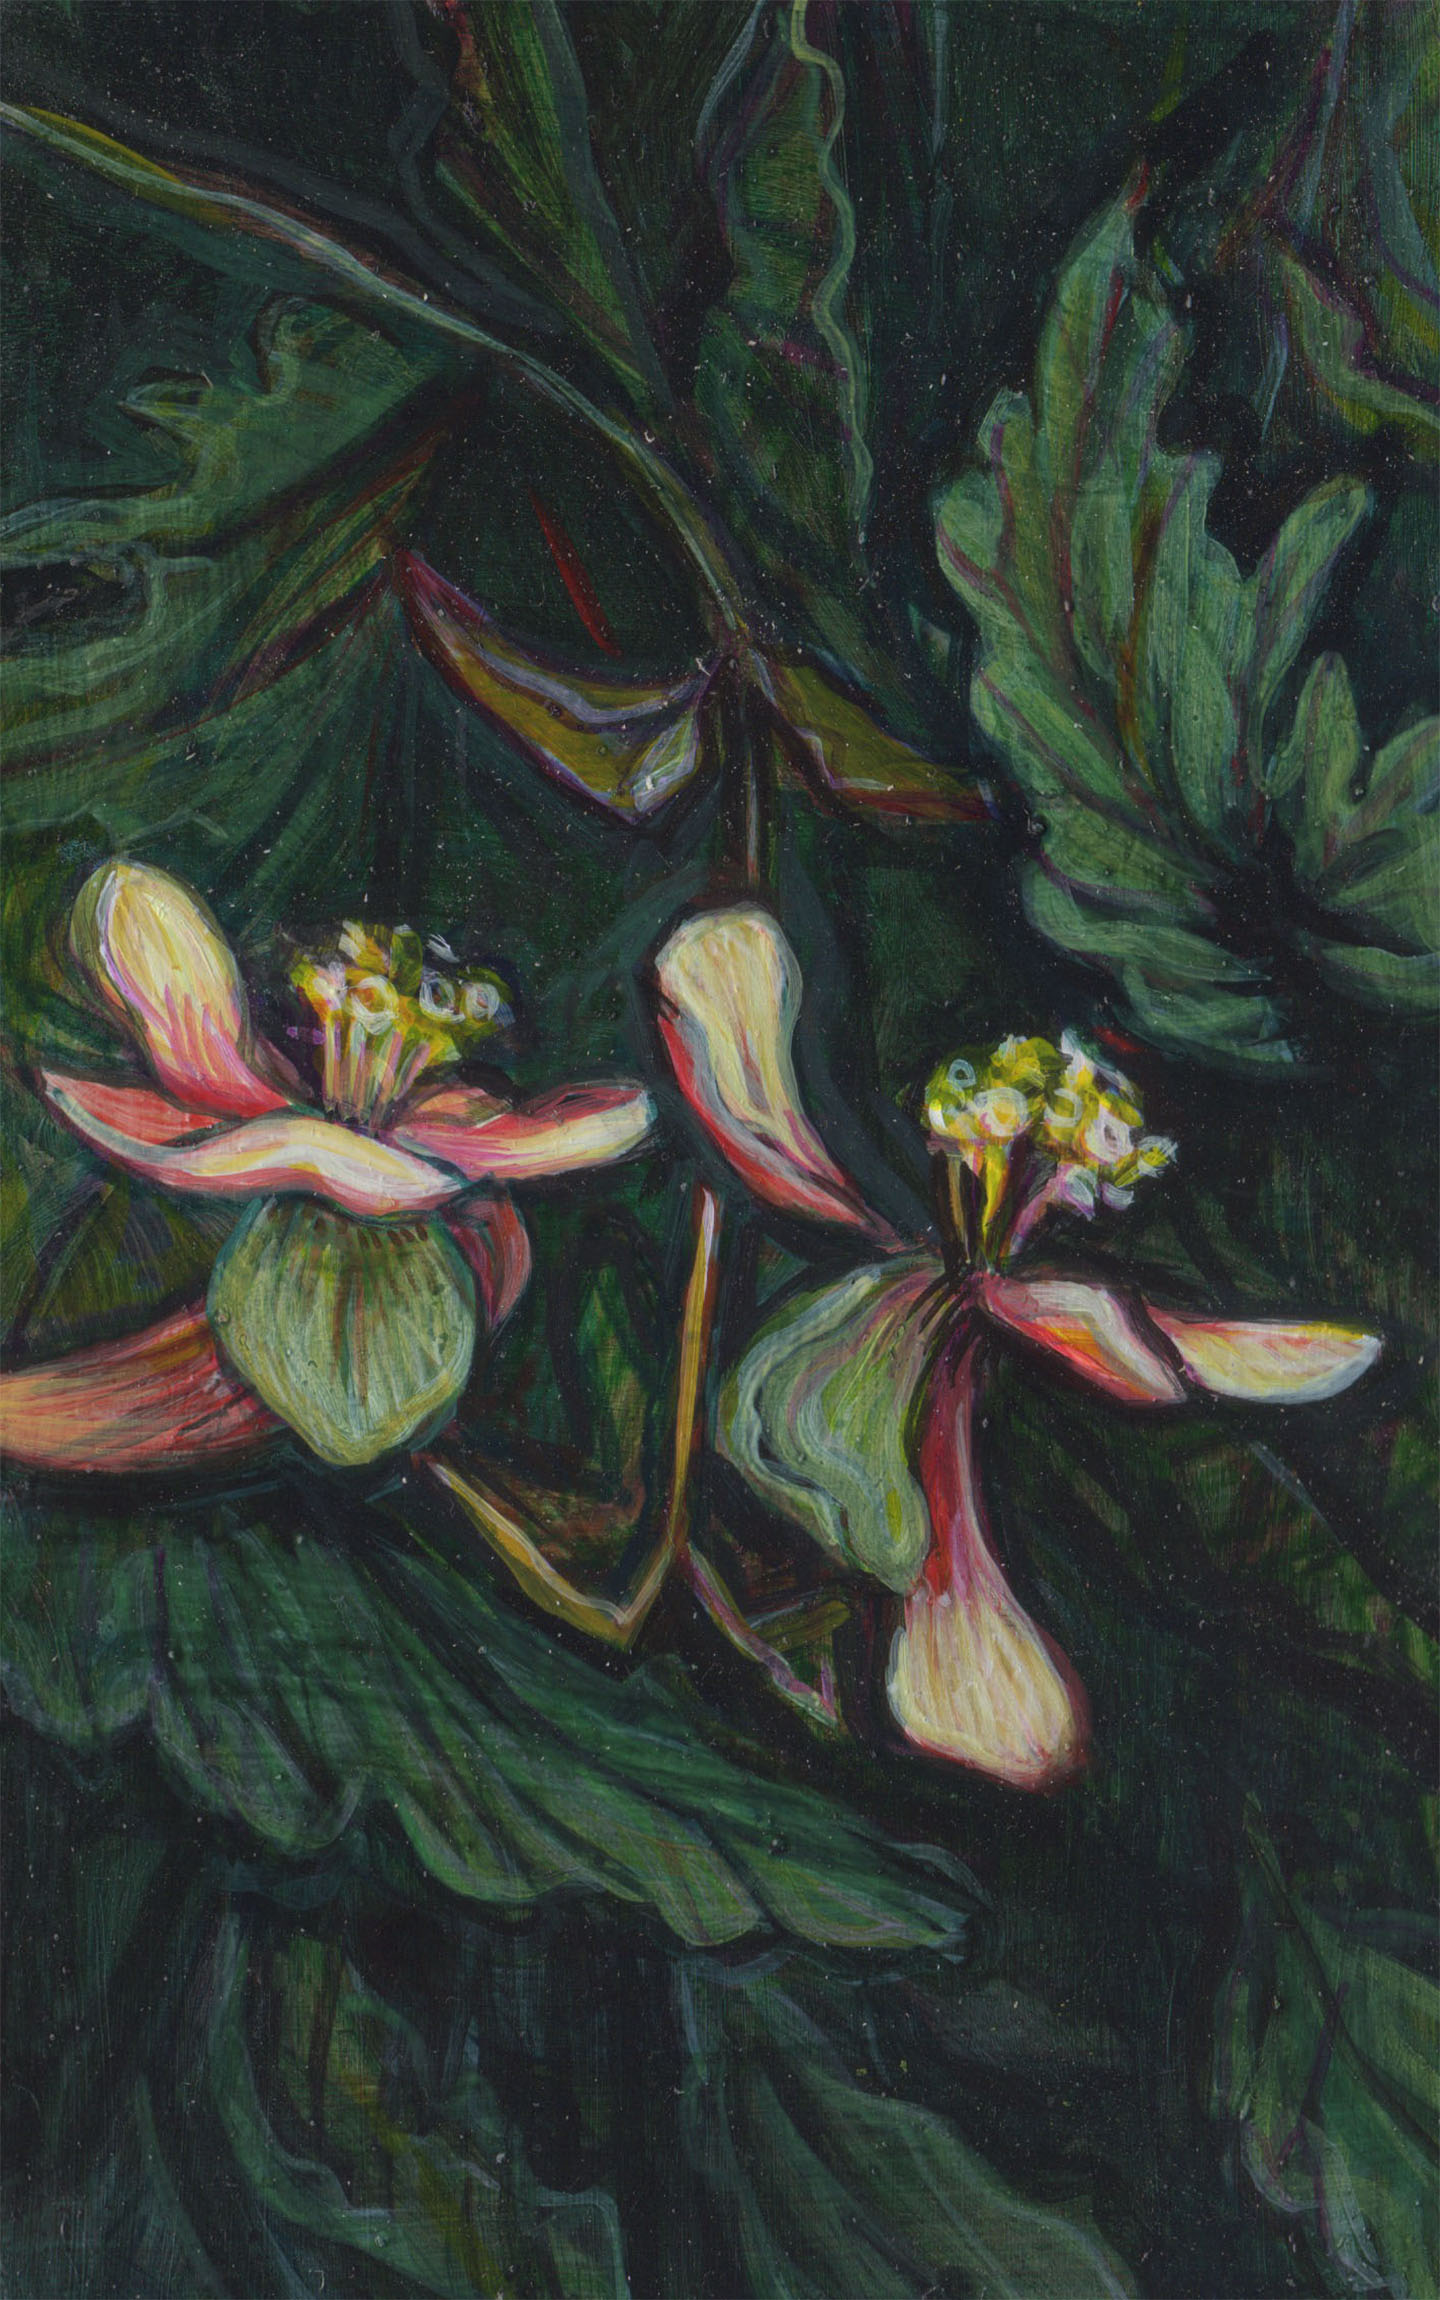 "(su1516) begonias, 5 3/4"" x 3 5/8"", water-based media on panel, 2015-2016"